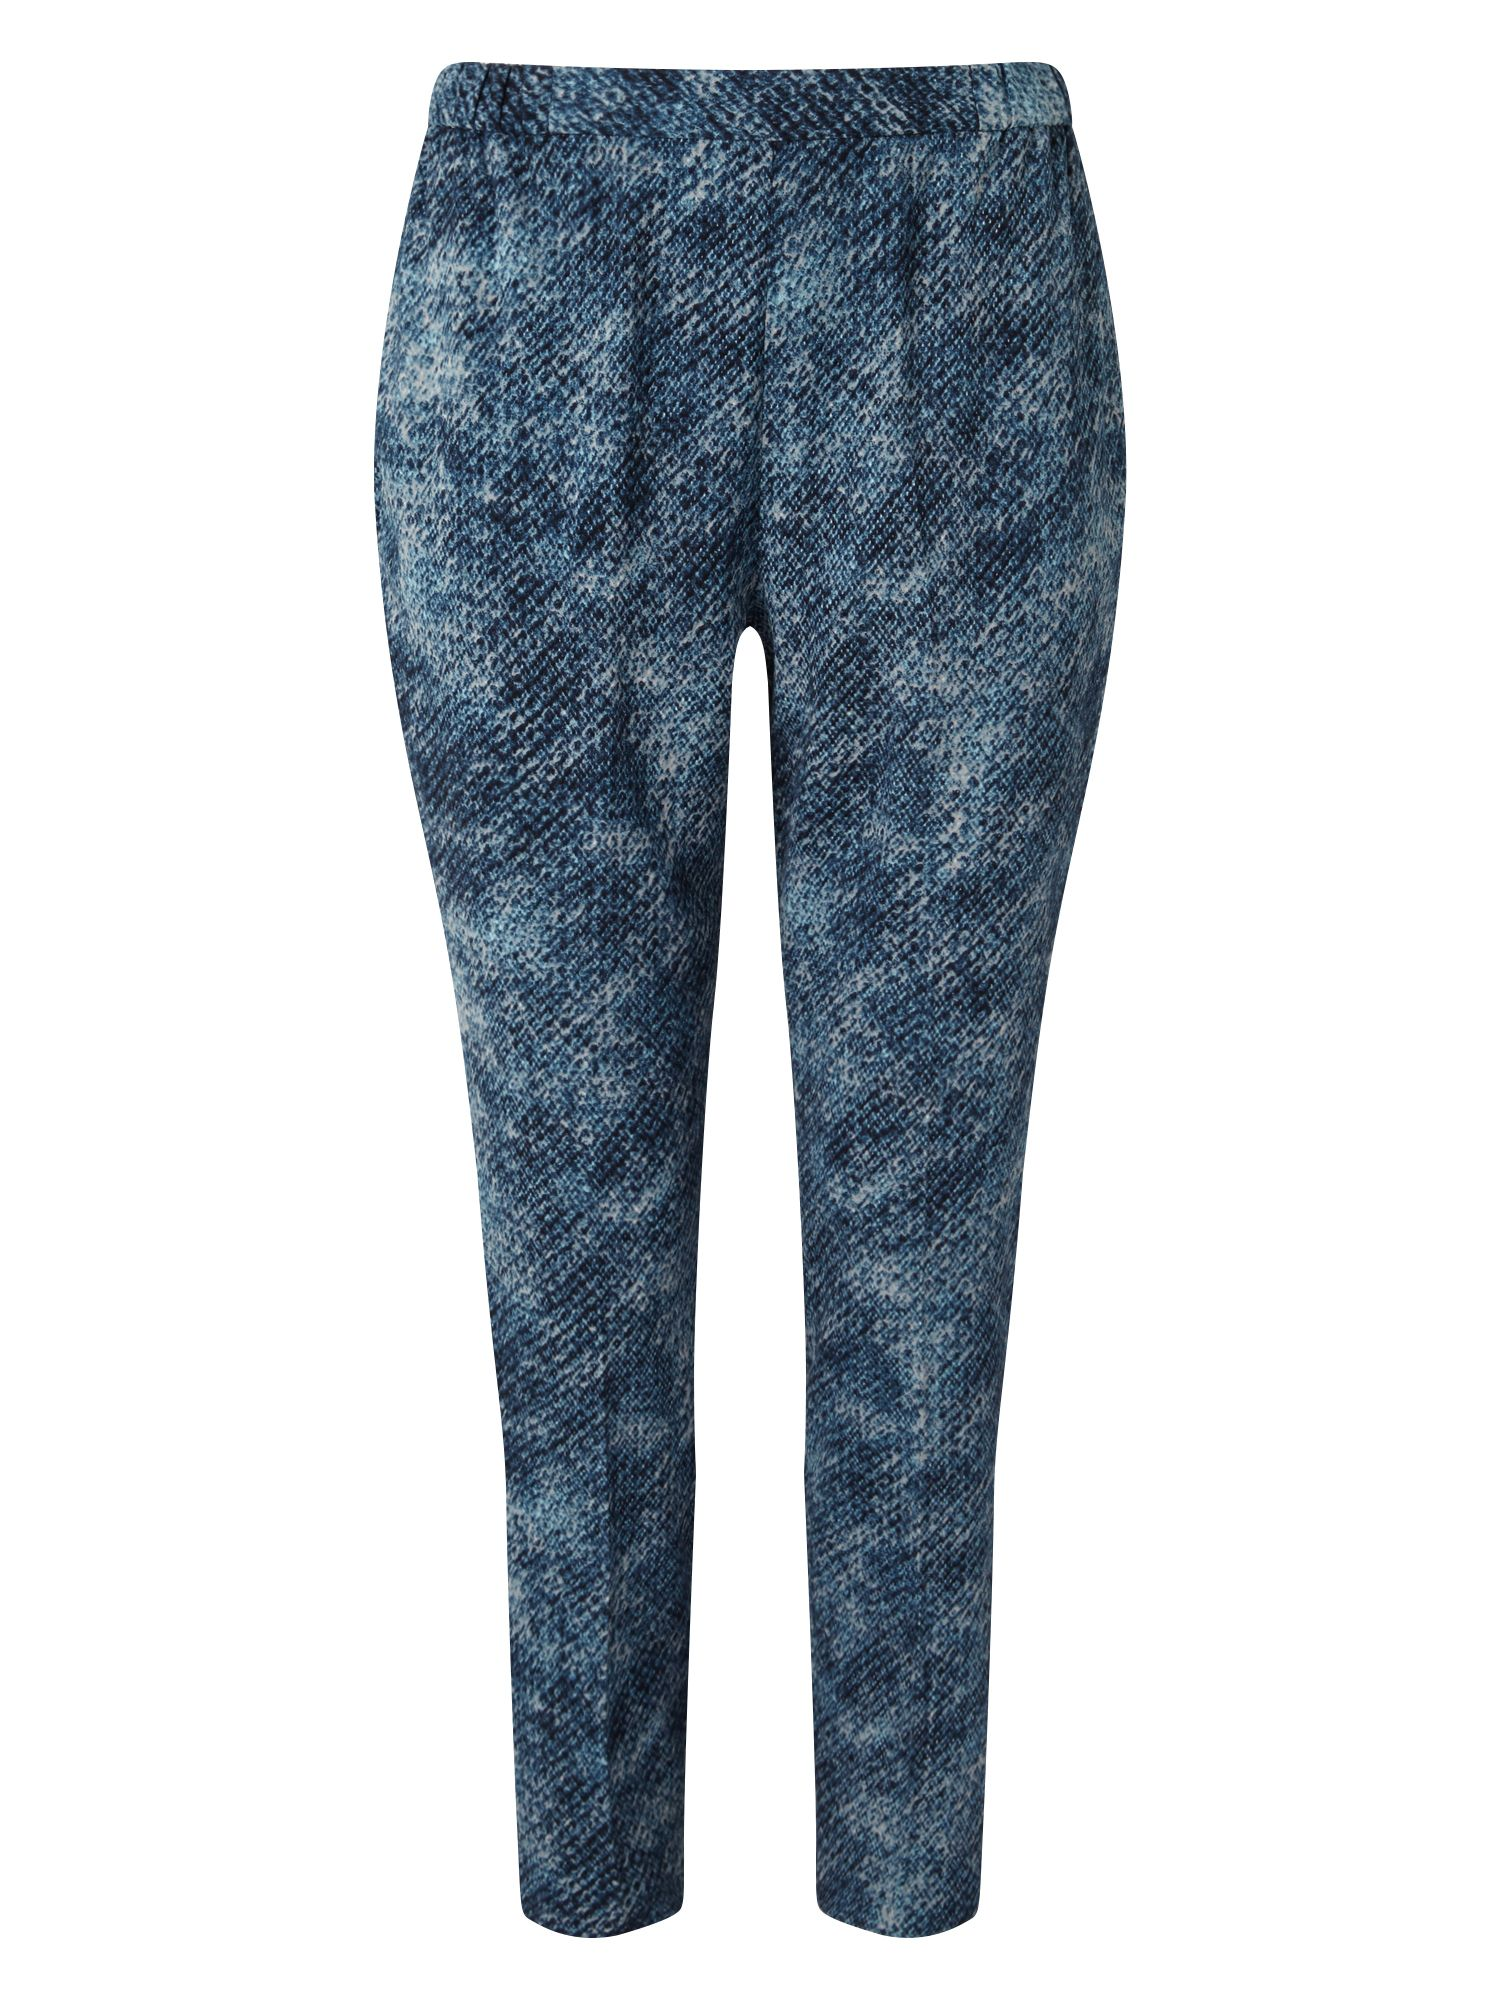 Eastex Printed Trouser, Multi-Coloured